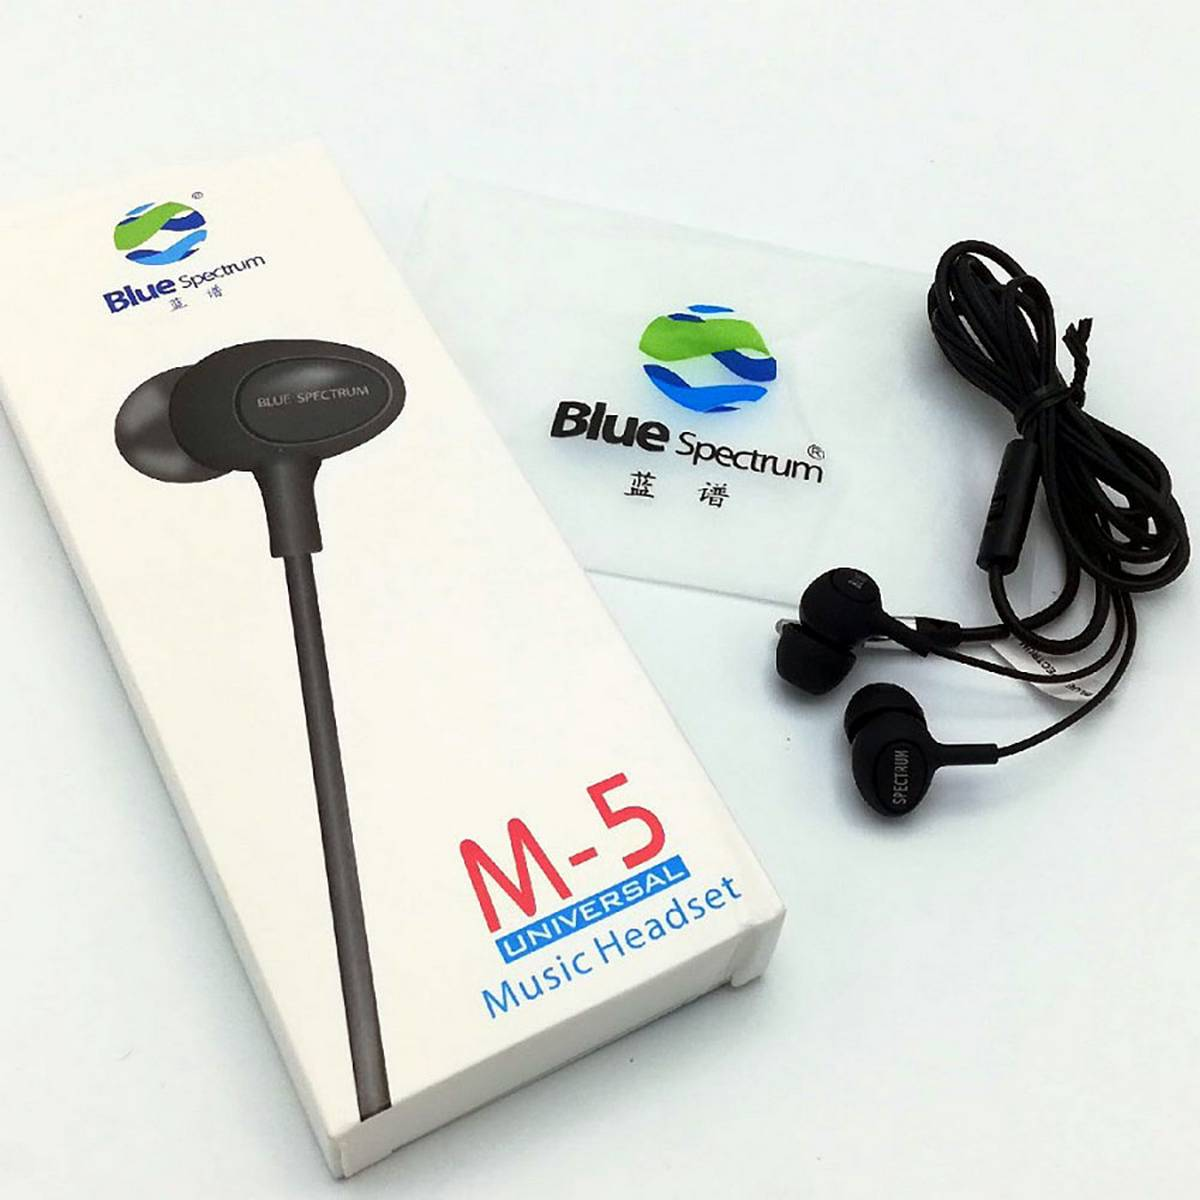 Original Blue Spectrum M5 Universal in Ear Wired HEAVY BASS Earphones Imported  HD Stereo High Quality Sound Handsfree with Mic Earbuds Music Elegant Series 360 Degree Surround Sound with Full Bass Clear Mic Best For Gaming PUBG, Music, Movies & Calling